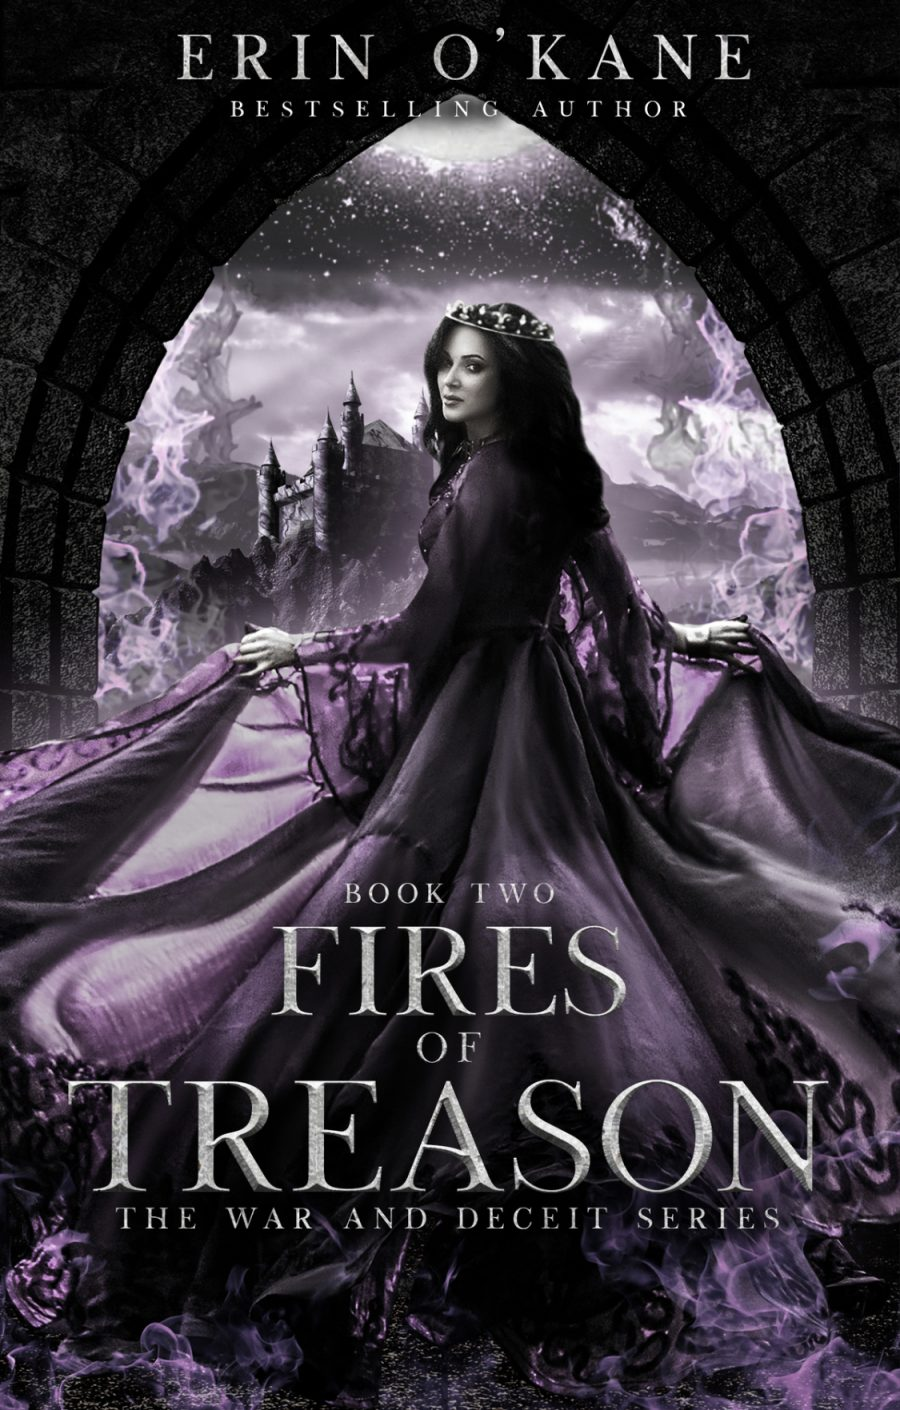 Fires of Treason (The War and Deceit Series - Book 2) by Erin O'Kane - A Book Review #BookReview #4Stars #SlowBurn #Fantasy #RH #KU